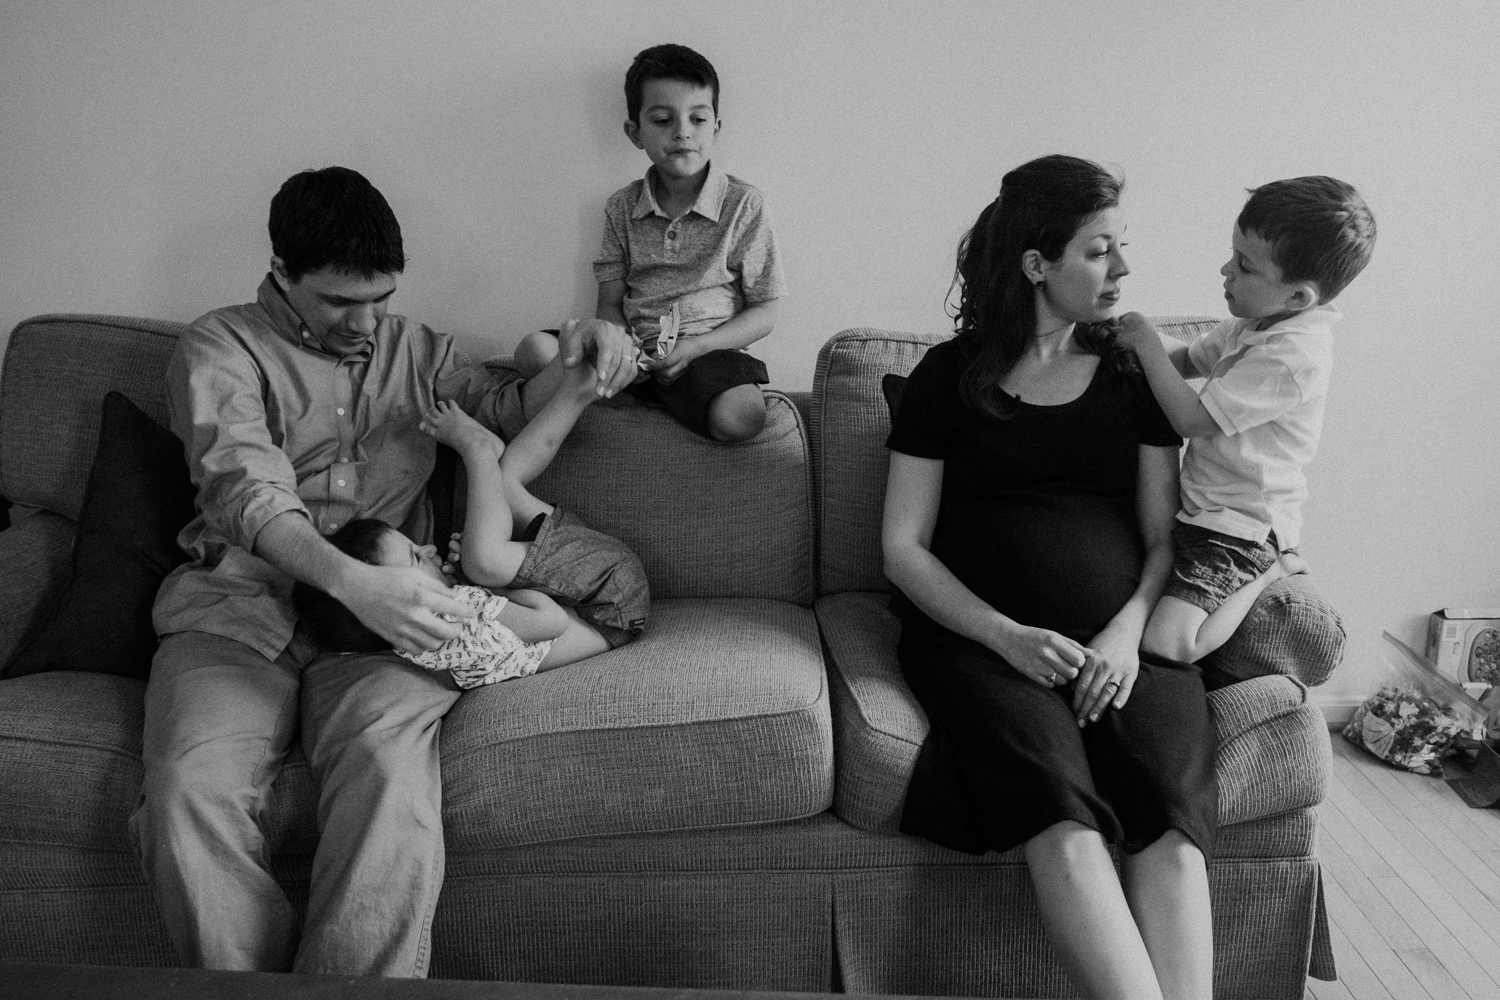 A mother and father are surrounded by their 3 boys while expecting their fourth child.